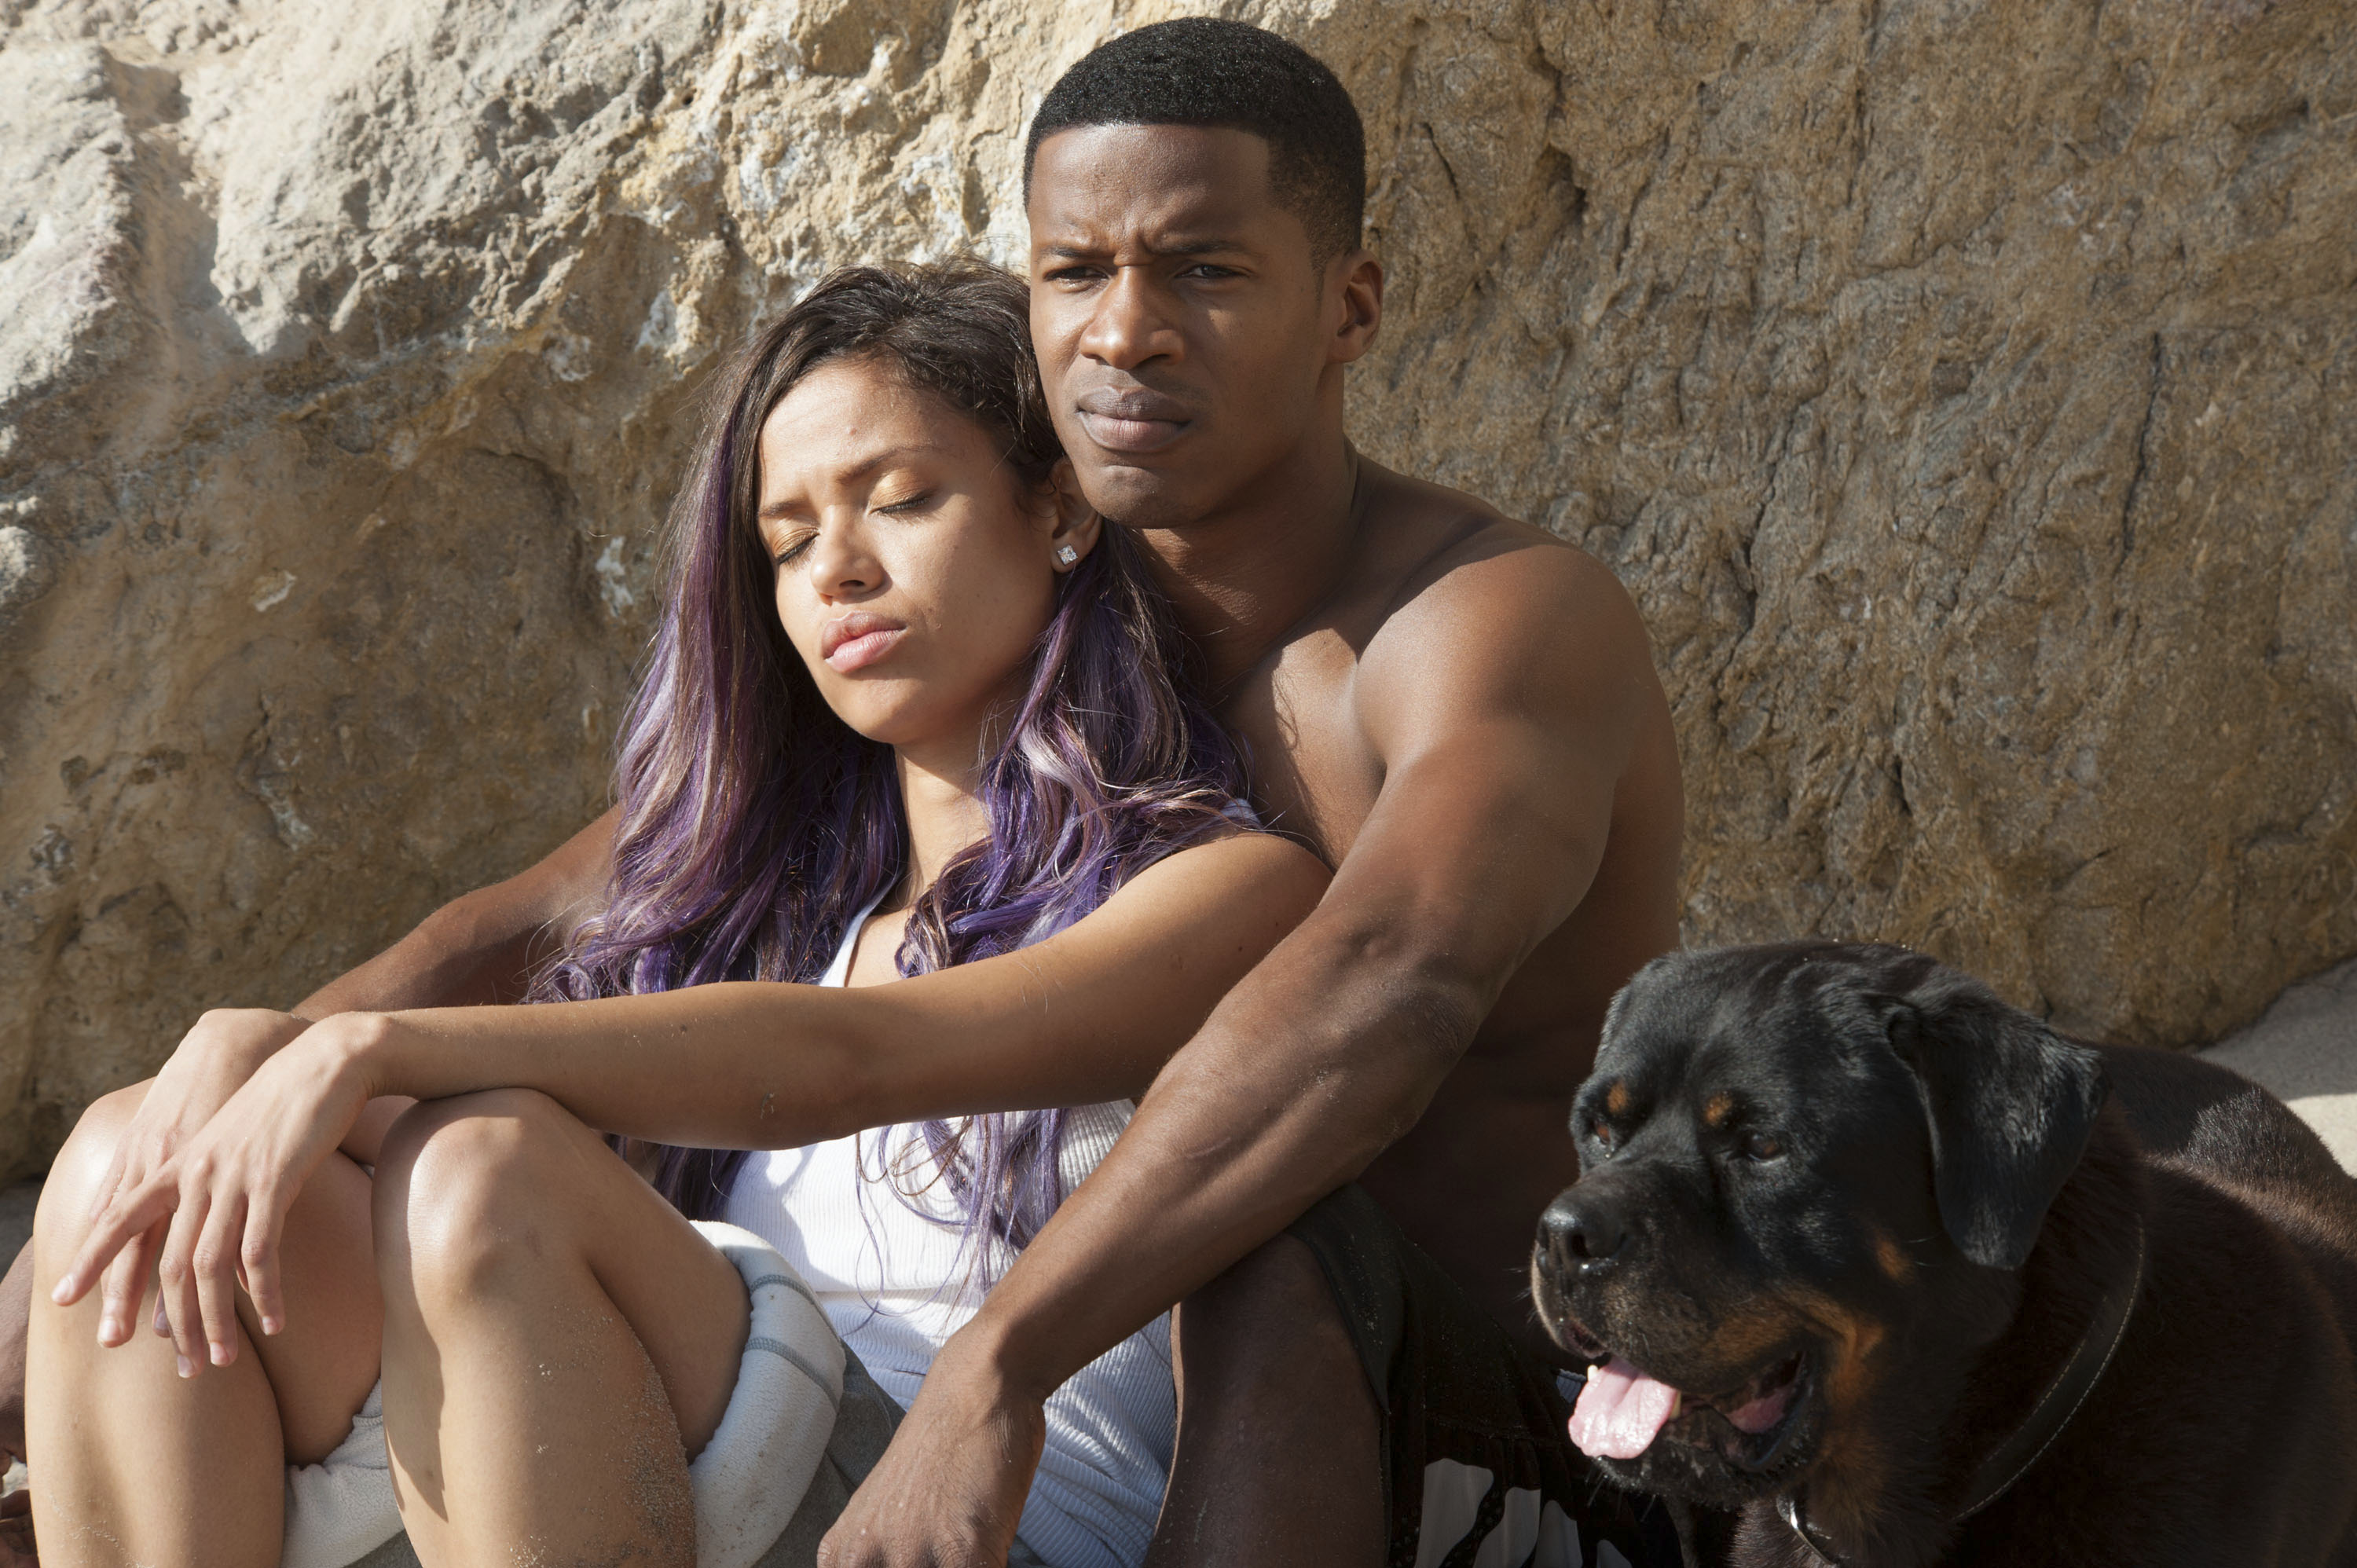 No Merchandising. Editorial Use Only. No Book Cover Usage.Mandatory Credit: Photo by Suzanne Tenner/Relativity Media/Kobal/REX/Shutterstock (5882431j) Gugu Mbatha-Raw, Nate Parker Beyond The Lights - 2014 Director: Gina Prince-Bythewood Relativity Media USA Scene Still Drama